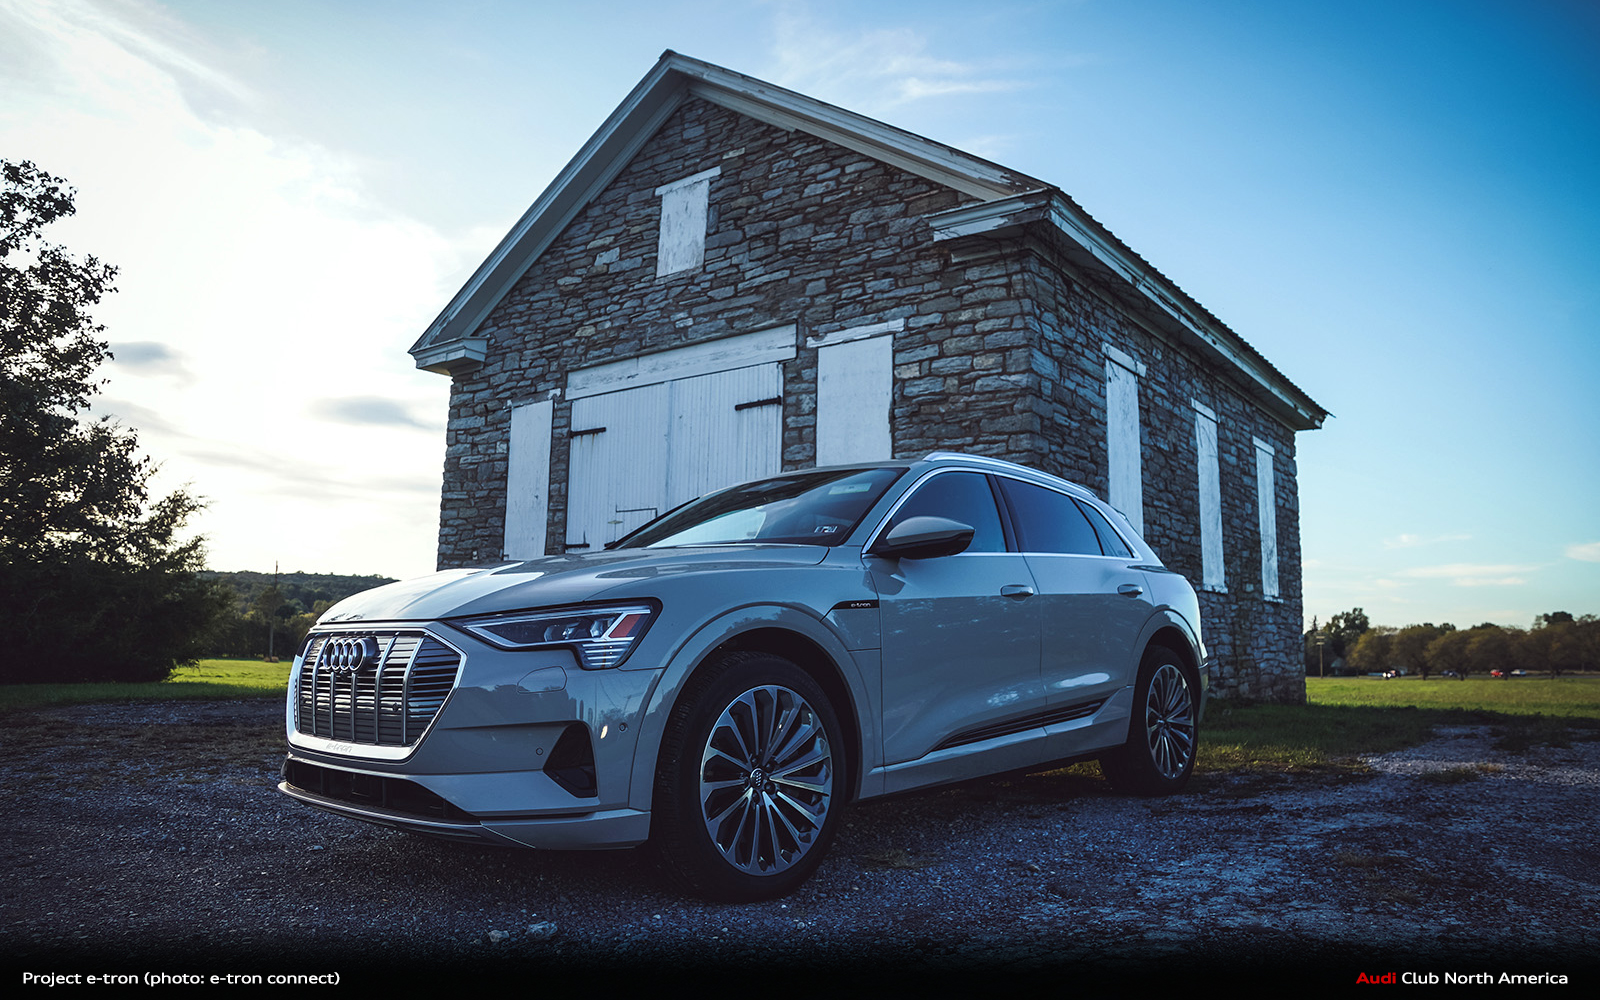 Vote For The Audi e-tron In The Driver's Choice 'Best Green Car' Category